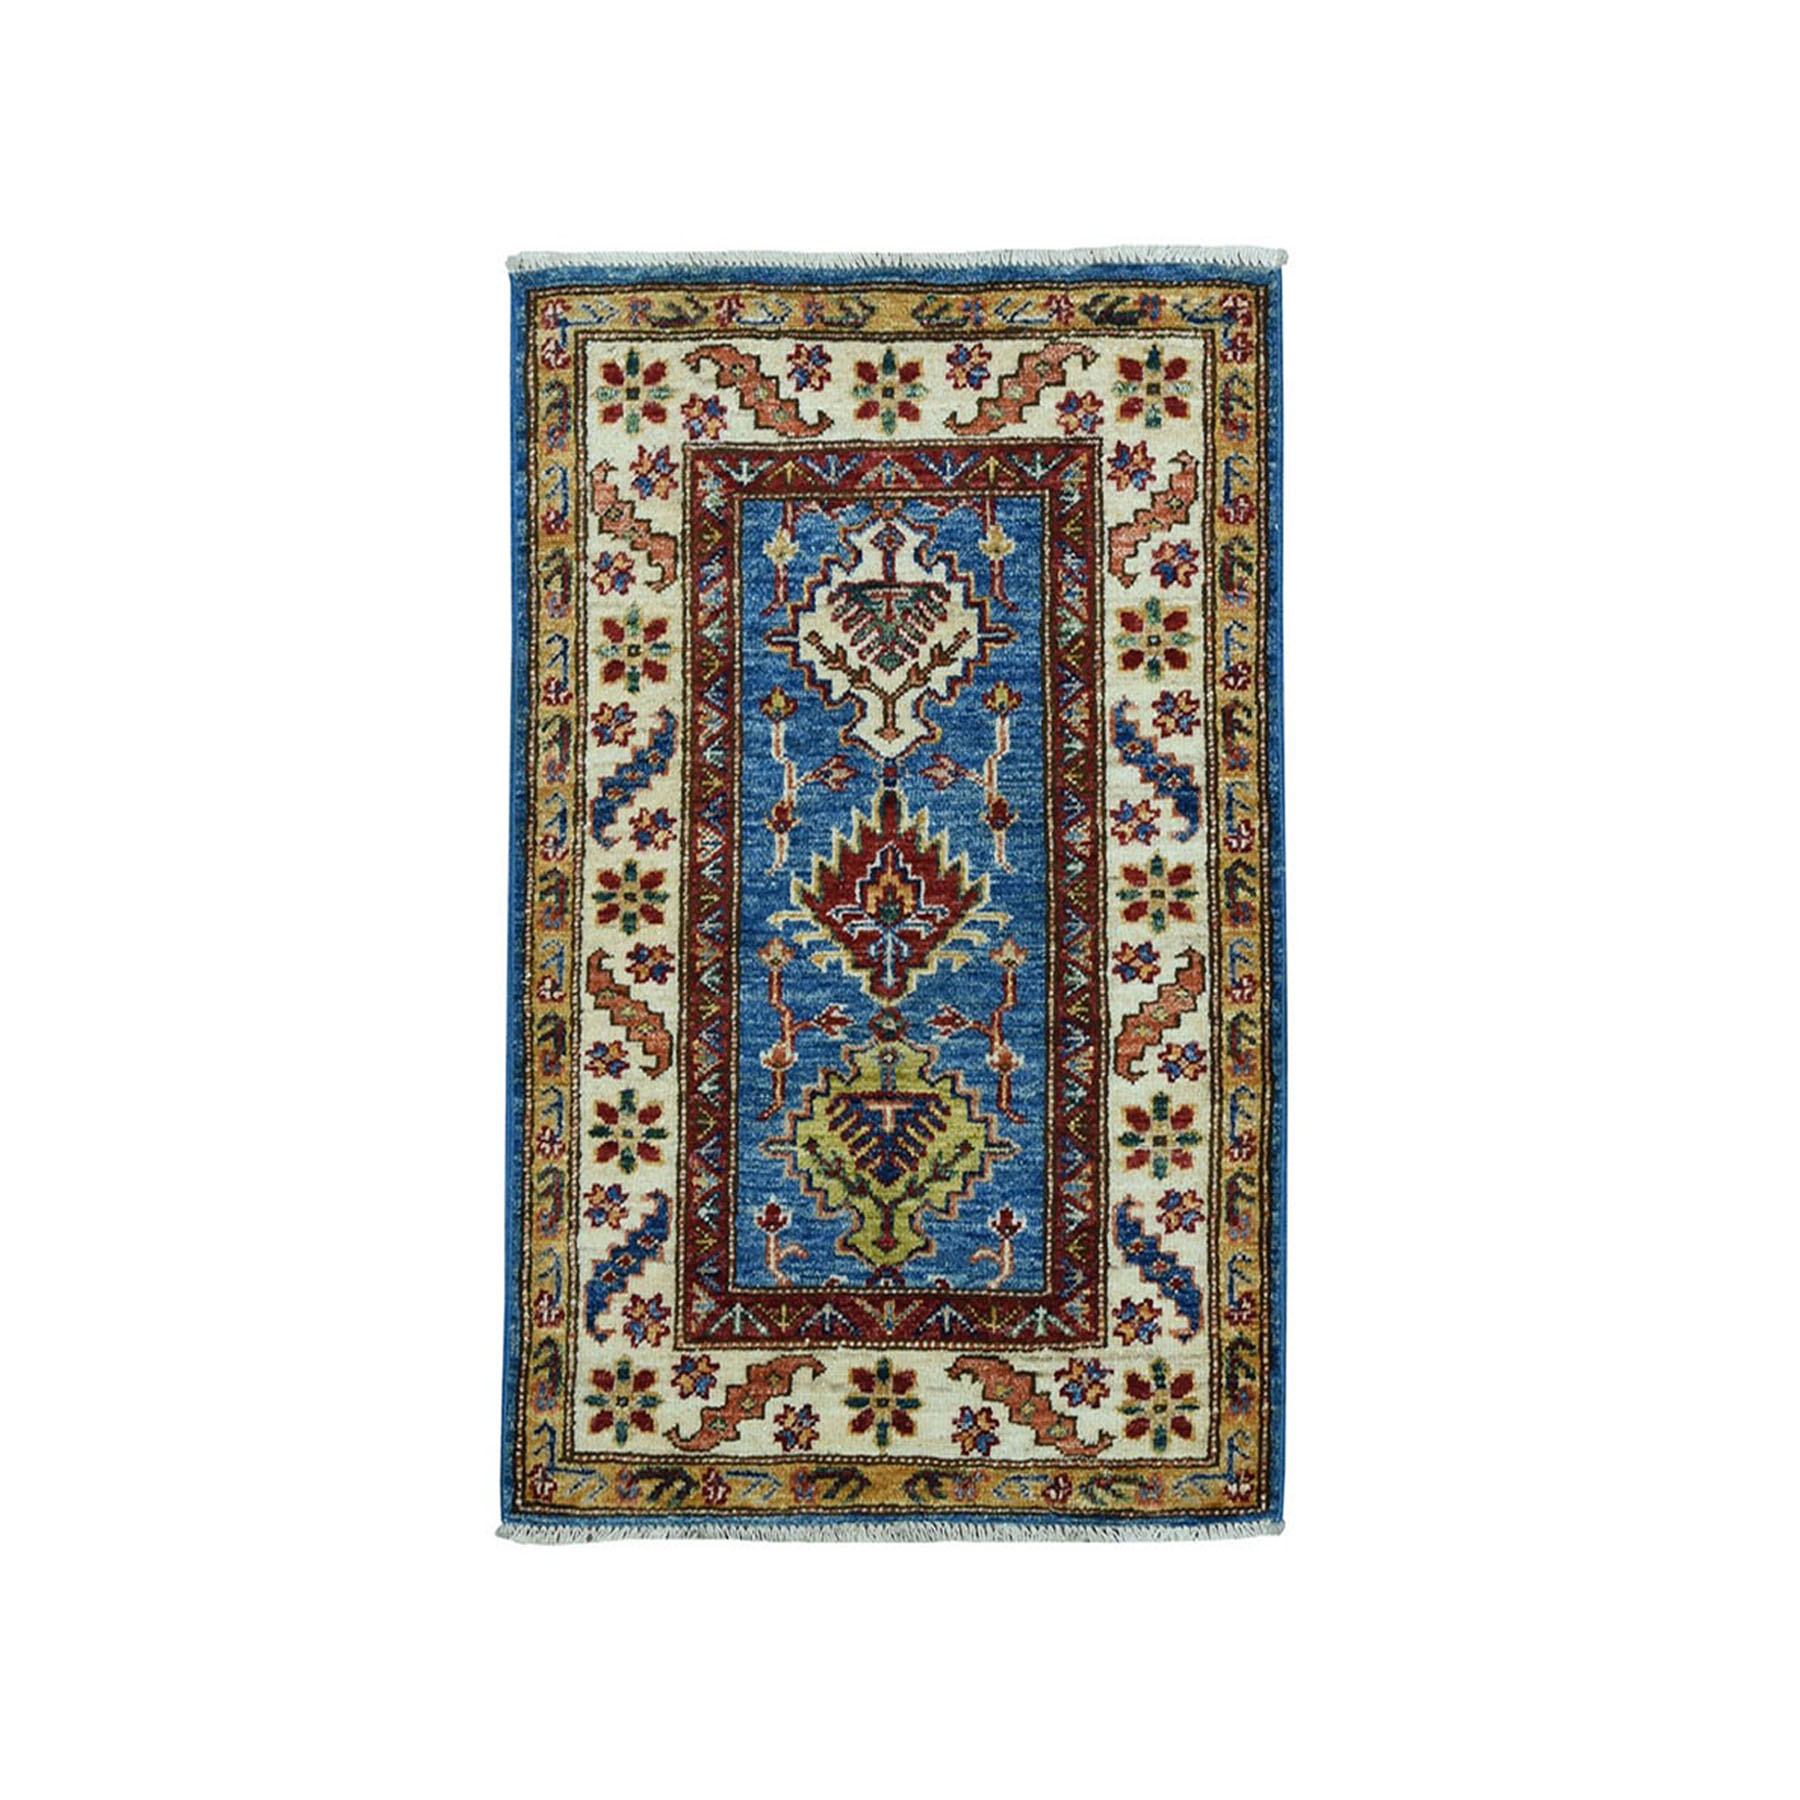 "2'x3'1"" Blue Super Kazak Geometric Design Pure Wool Hand-Knotted Oriental Rug"